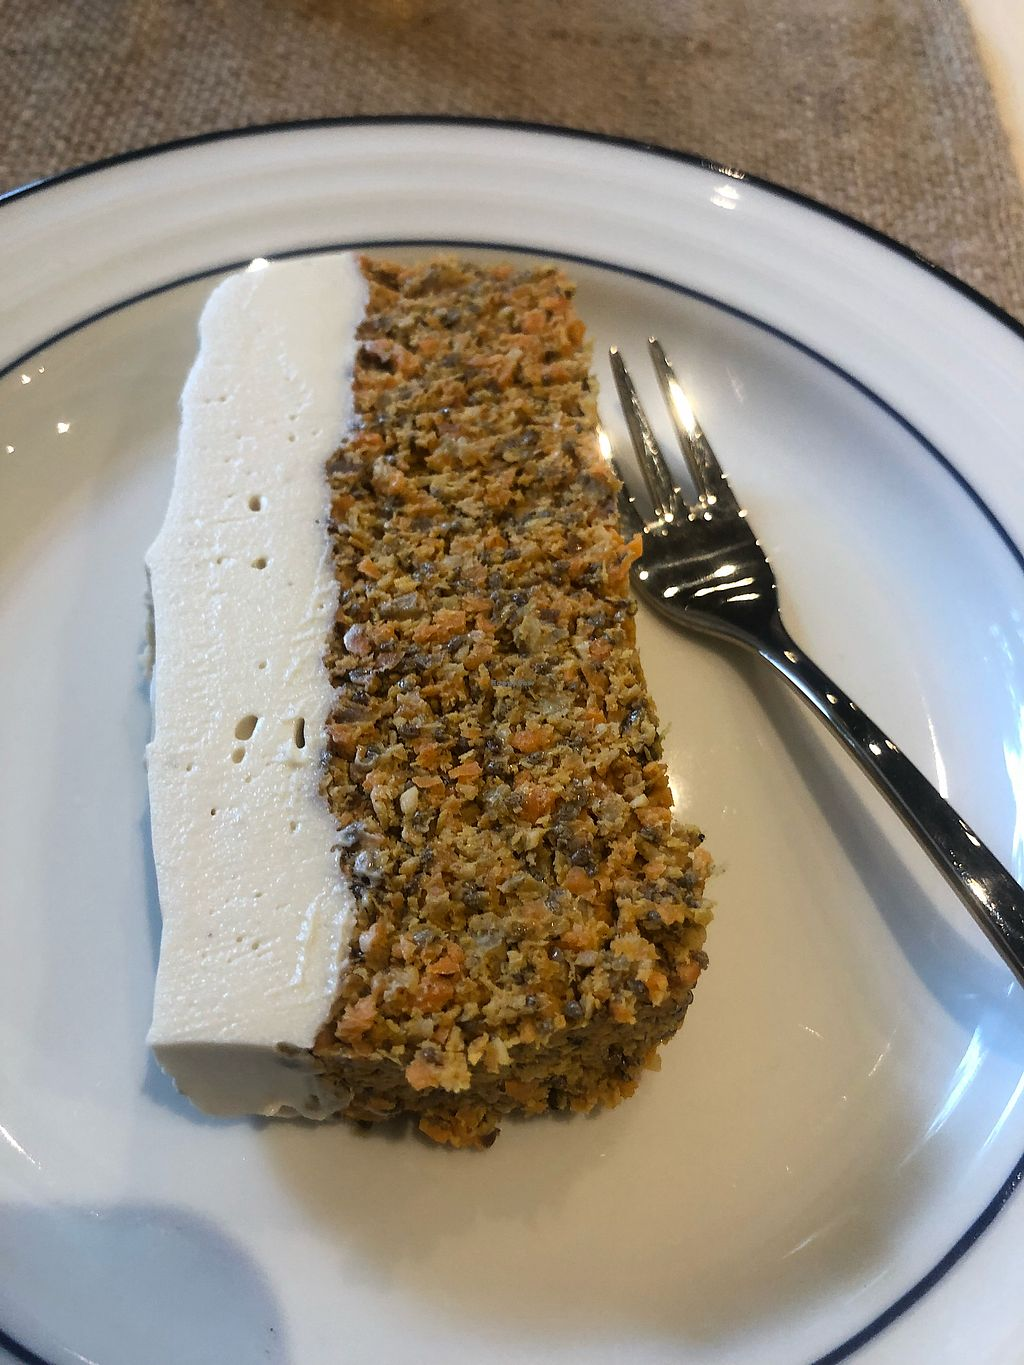 """Photo of Rawdical Vegan Kitchen  by <a href=""""/members/profile/Egil"""">Egil</a> <br/>Delicious carrot cake <br/> February 6, 2018  - <a href='/contact/abuse/image/108126/355503'>Report</a>"""